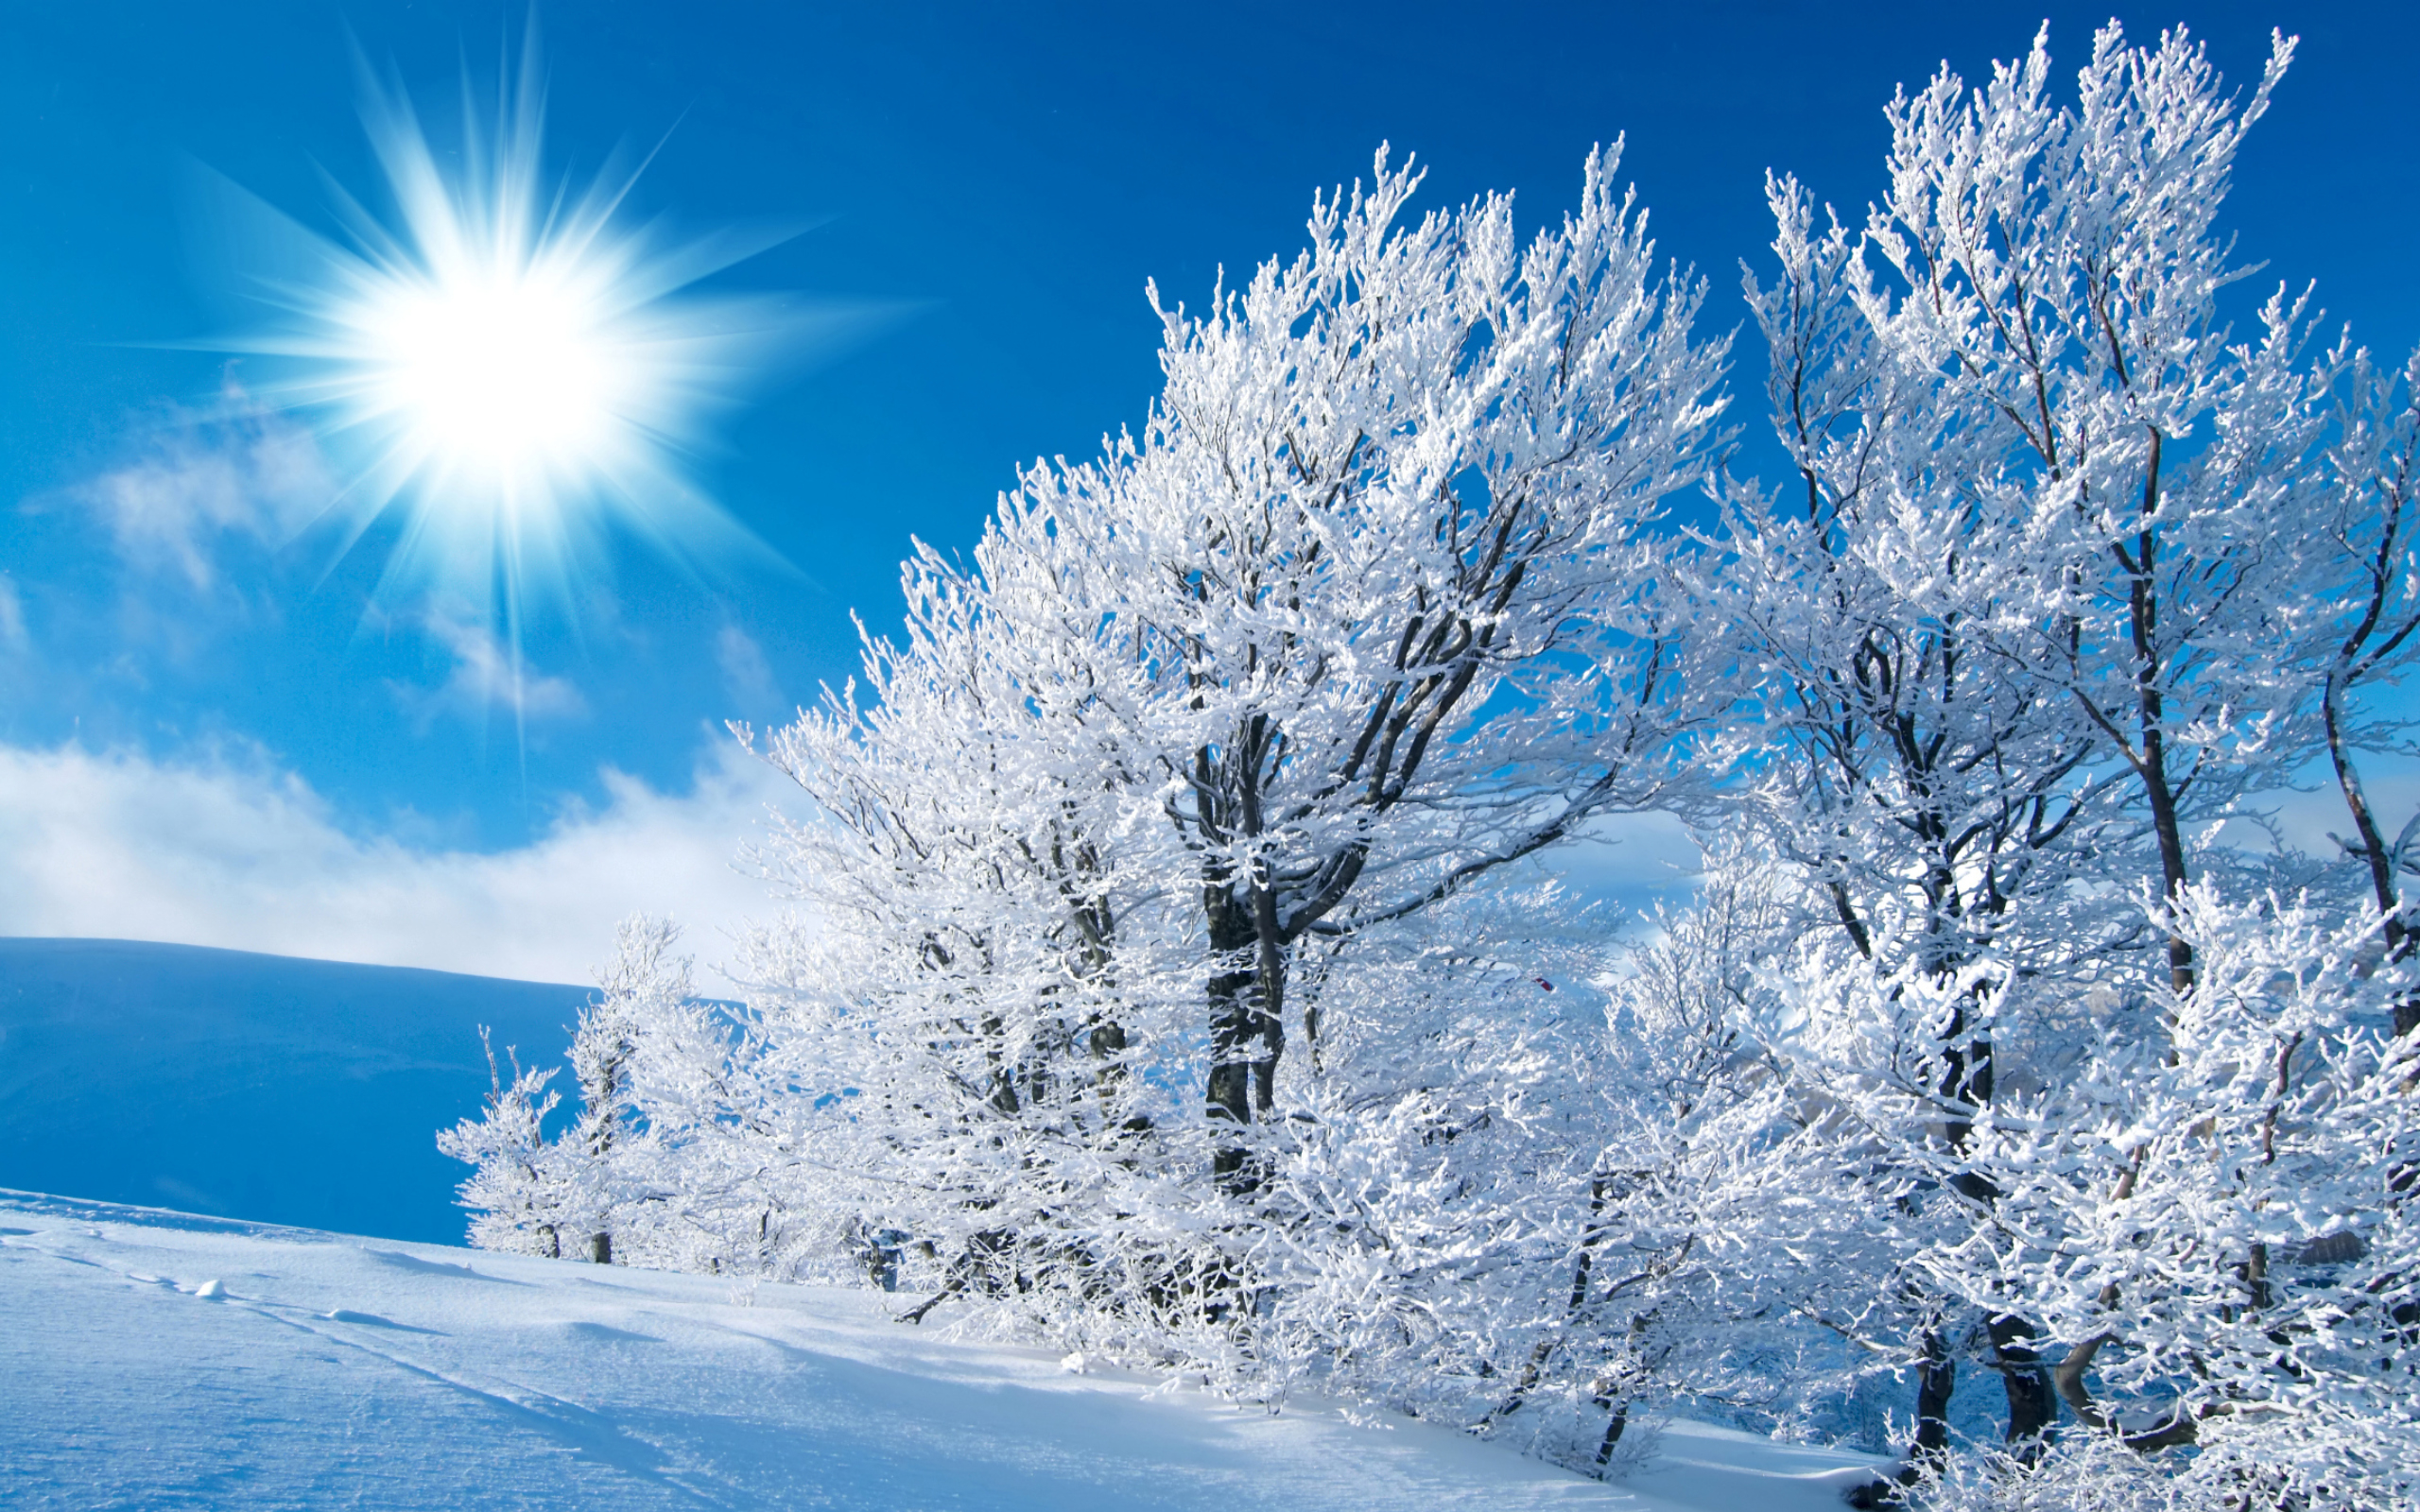 Hd Winter Backgrounds Free | galleryhip.com - The Hippest ...